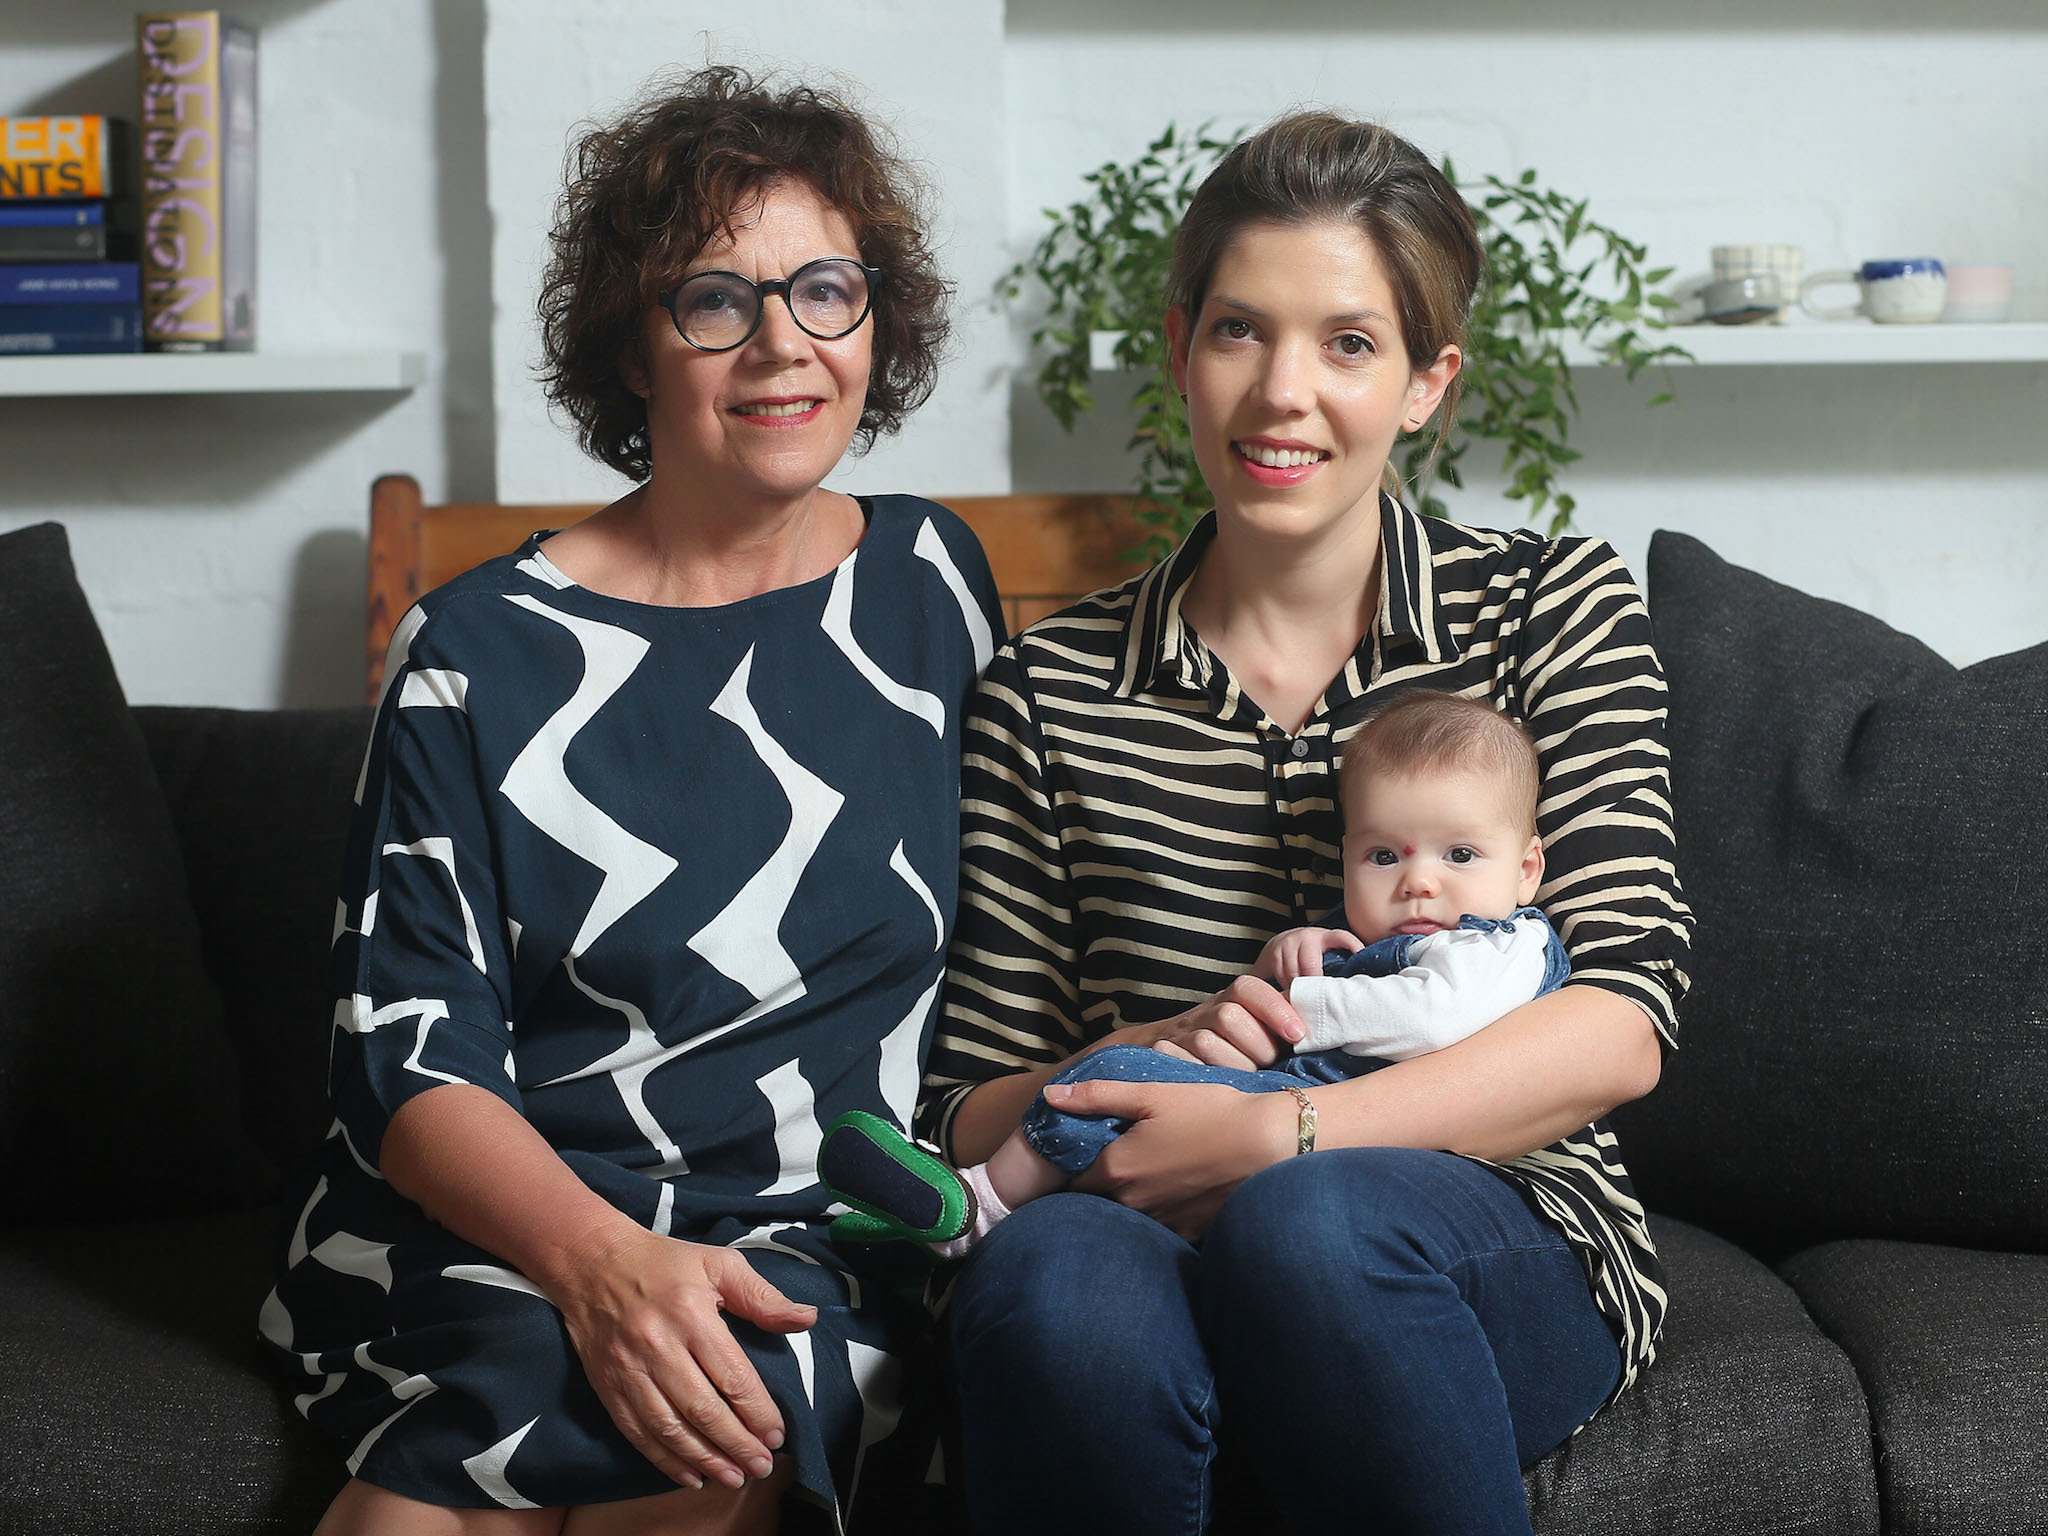 Cool mums feature: Lucy Feagins and baby Minnie